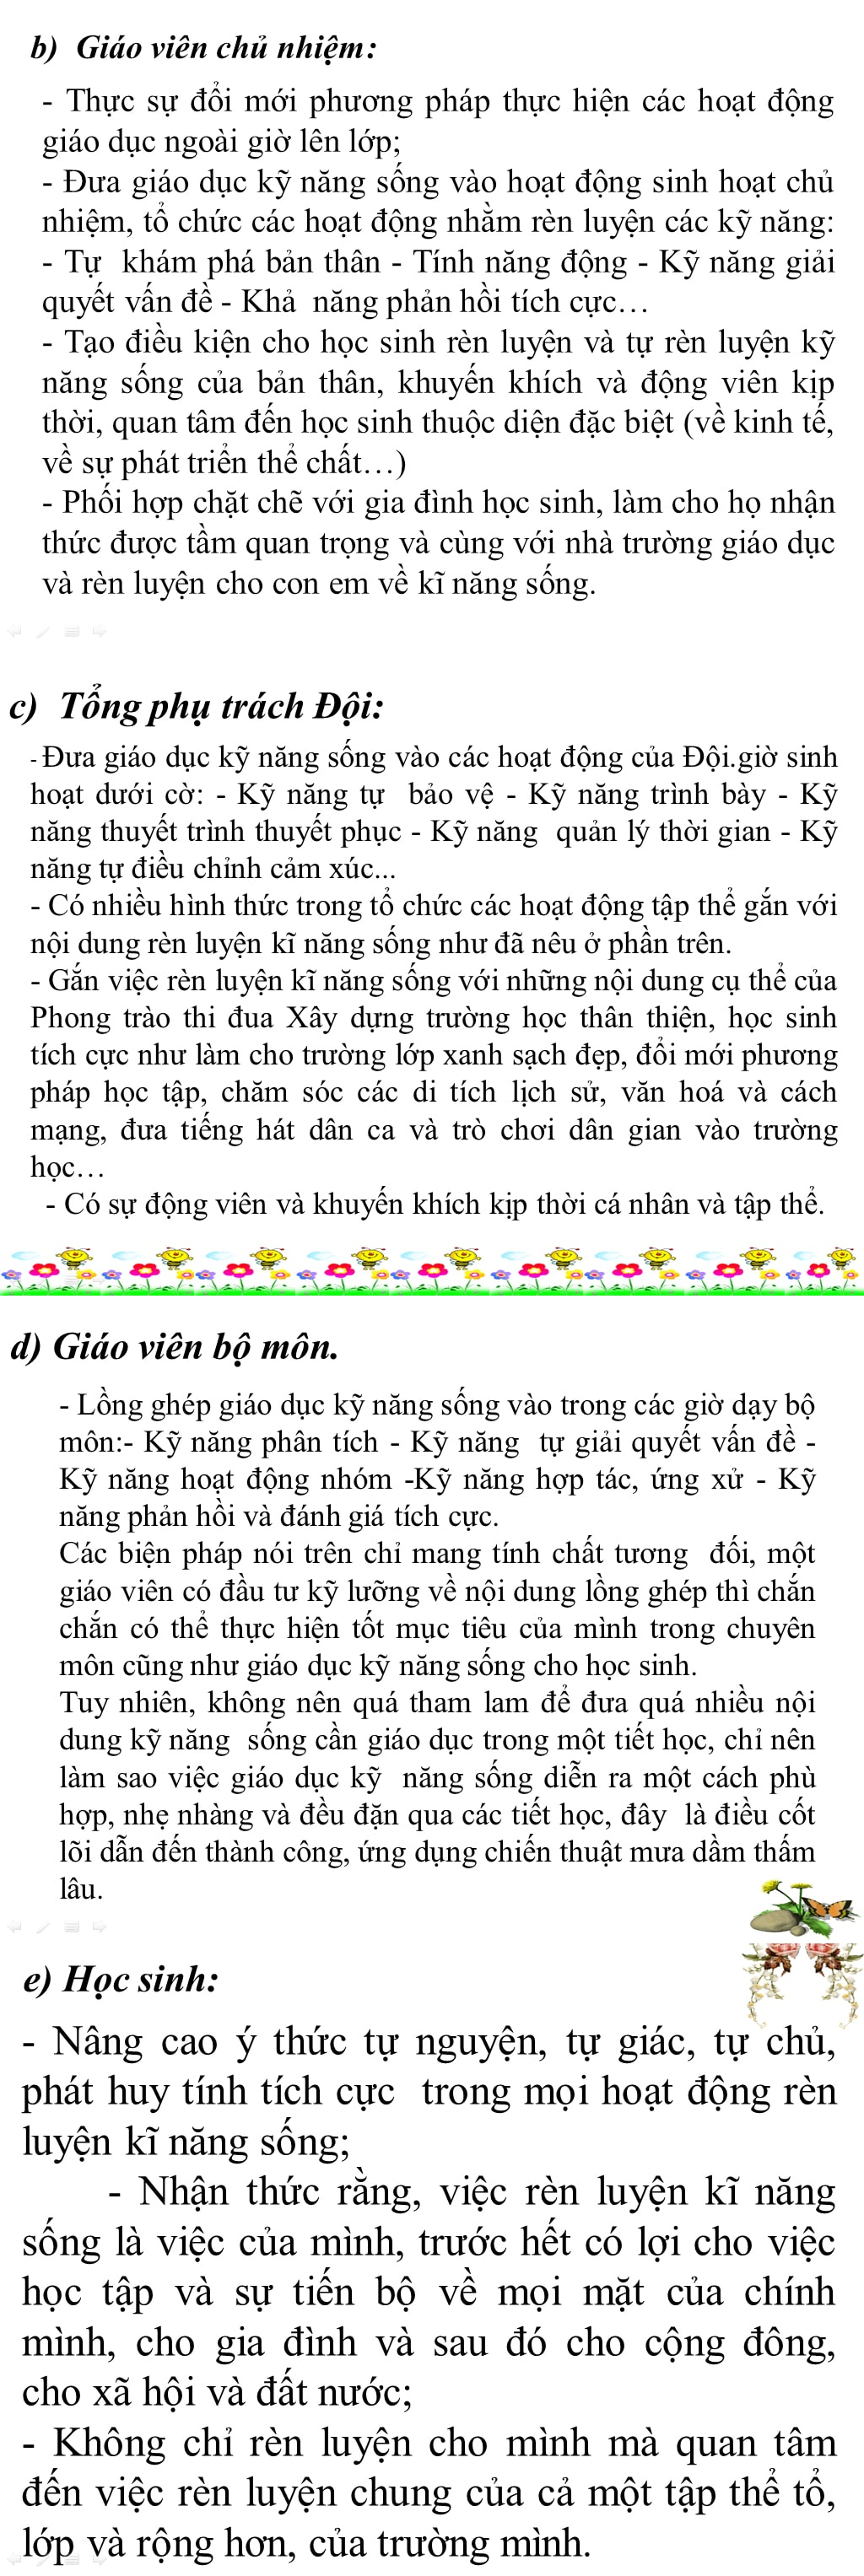 do quoc thinh 4